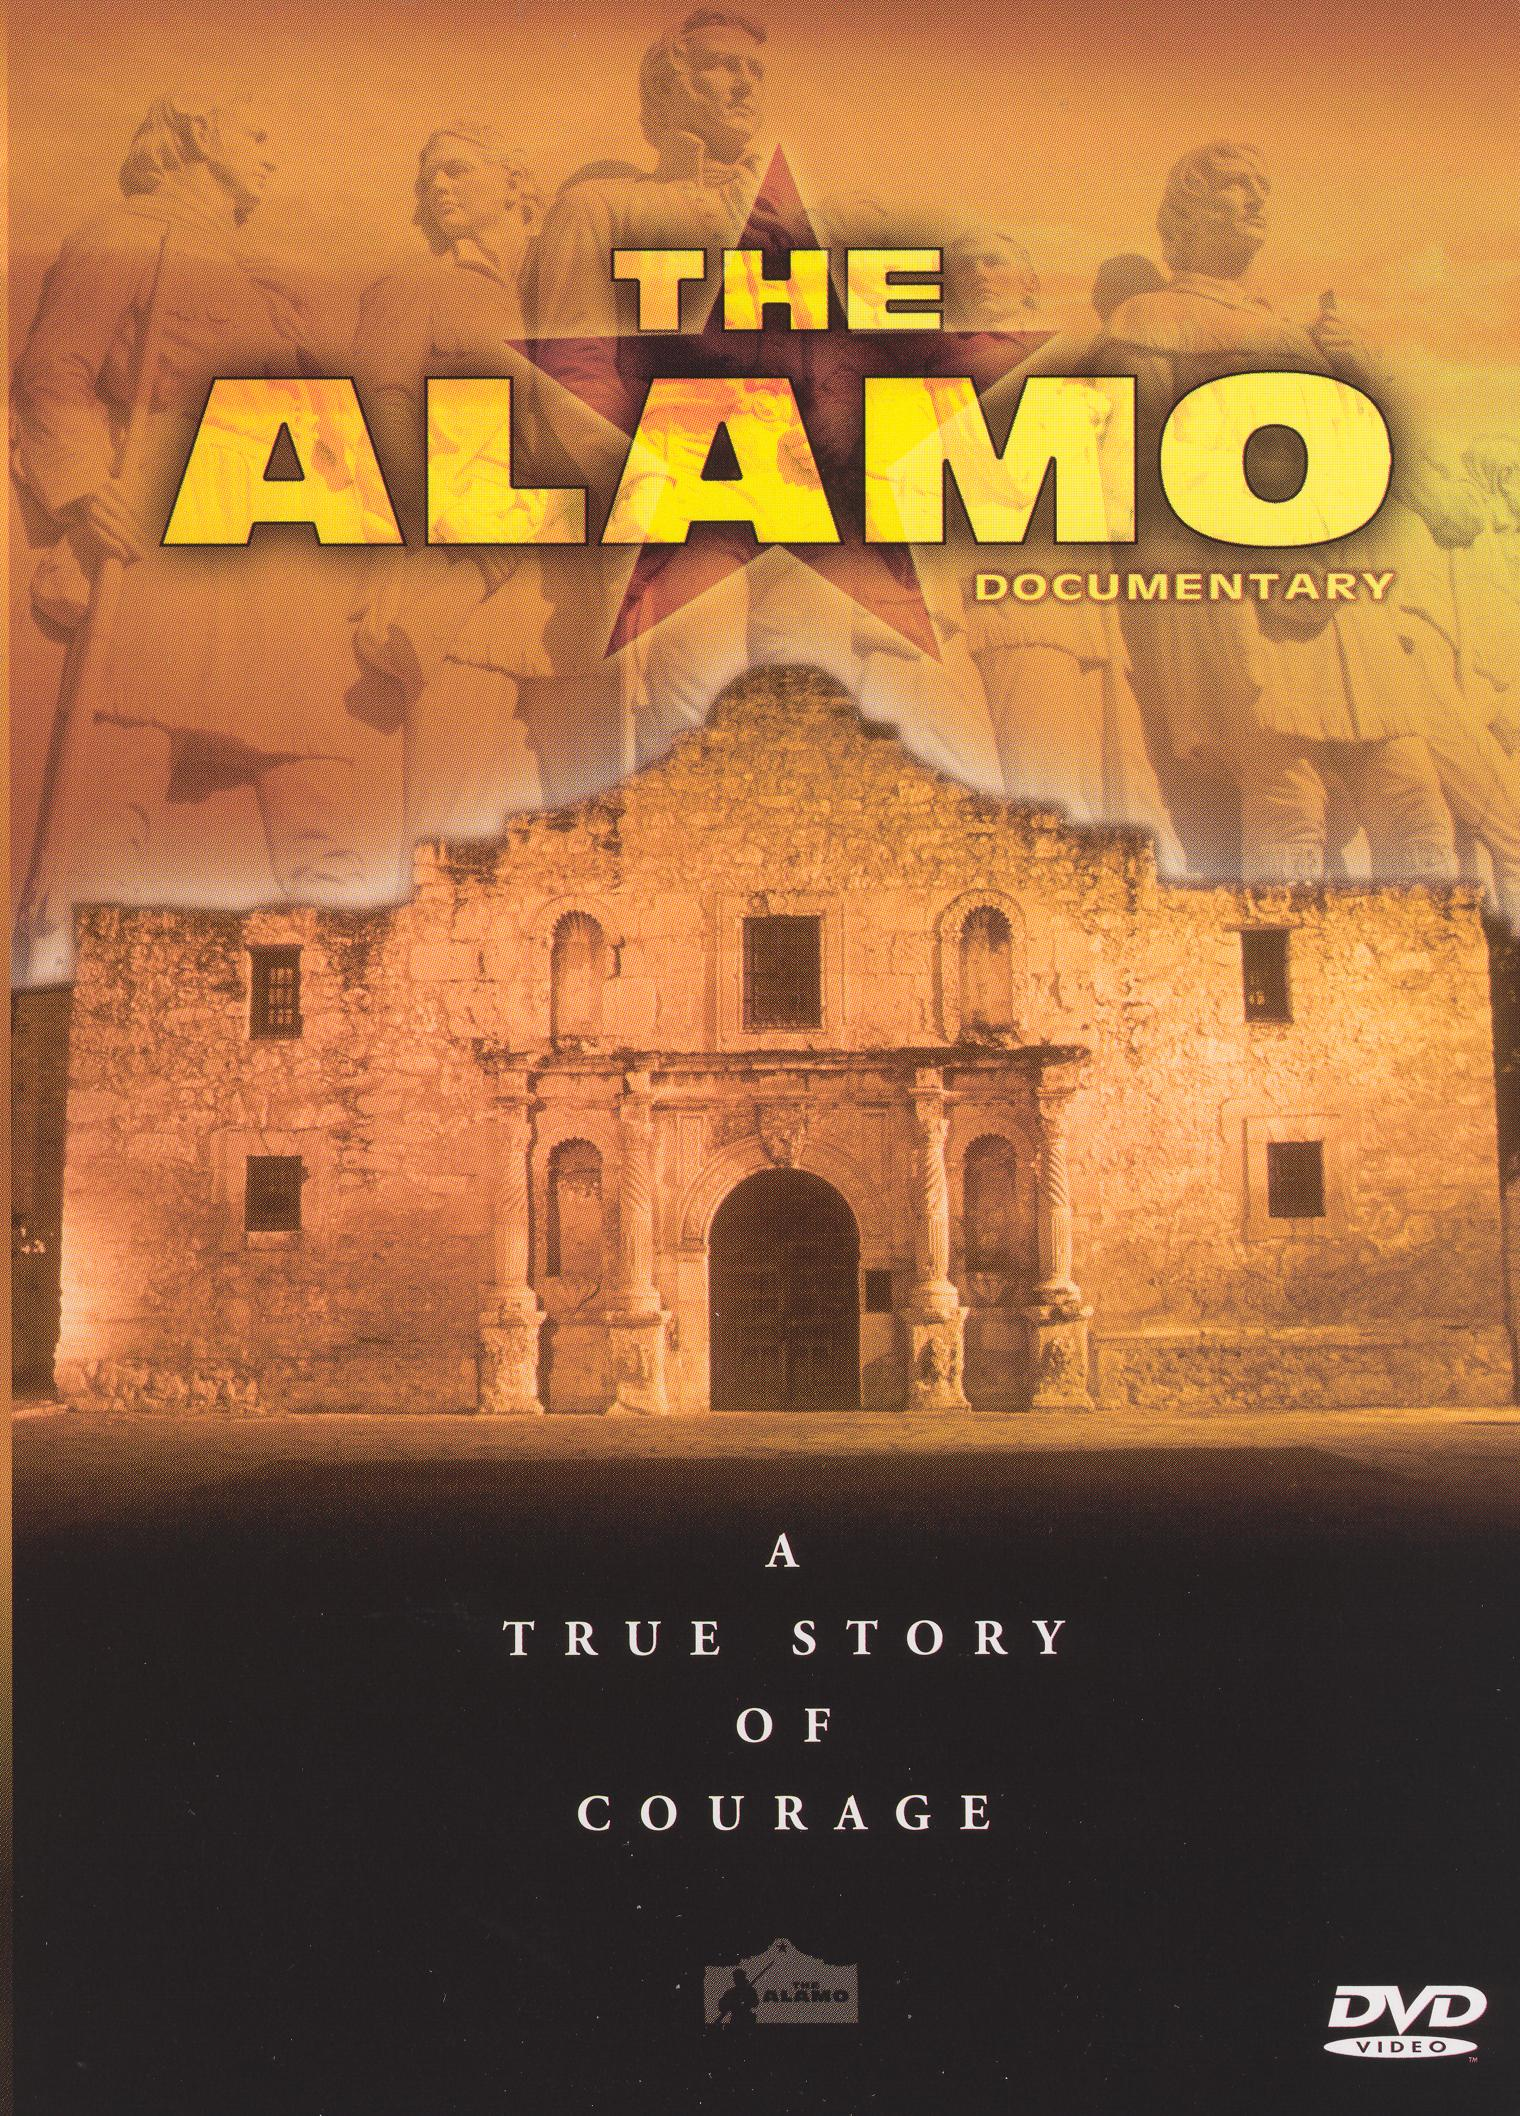 The Alamo Documentary: A True Story of Courage